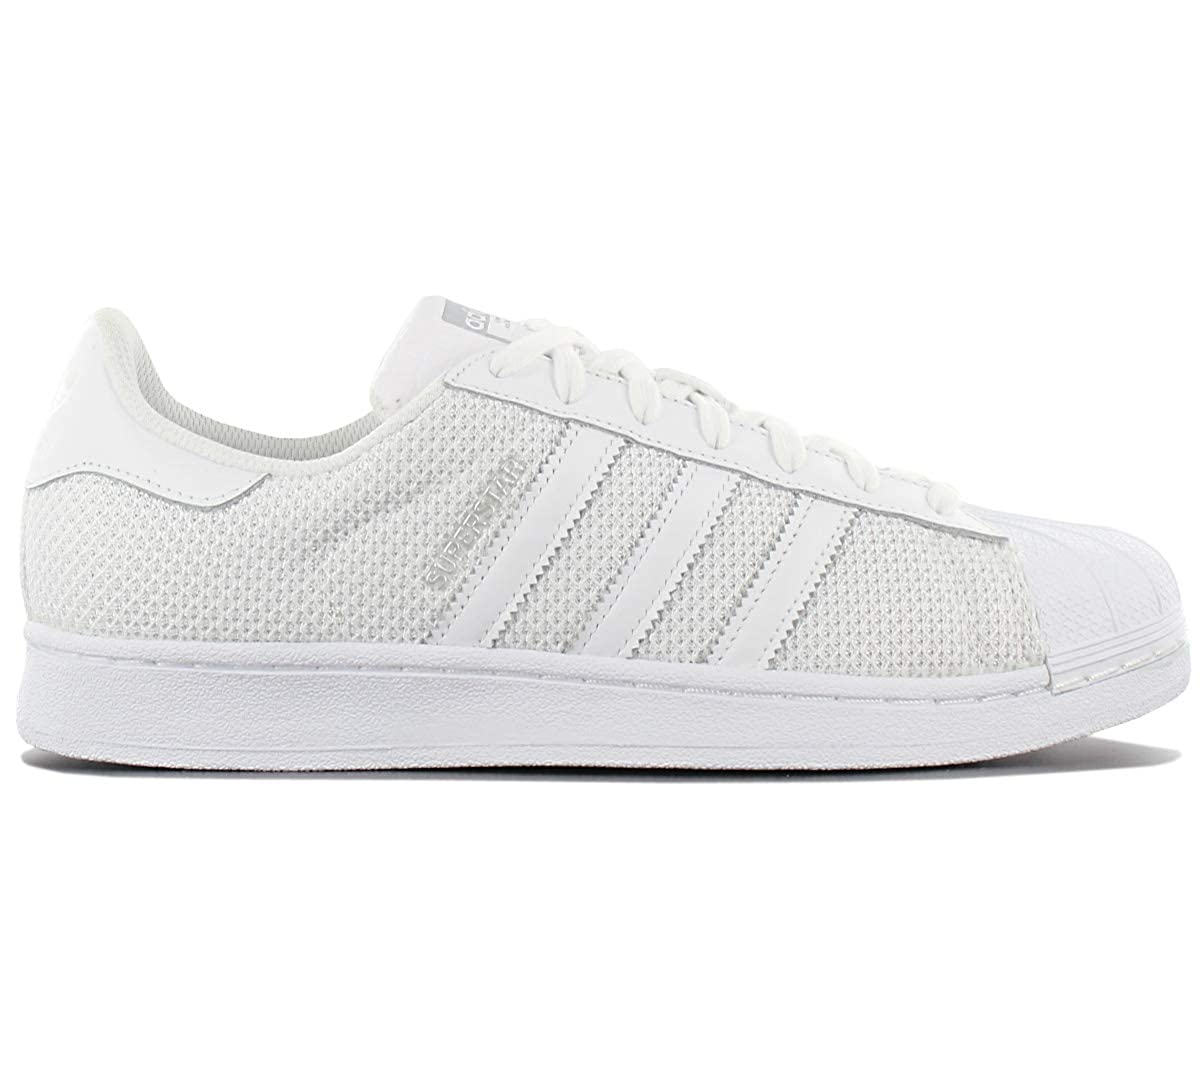 334f0917c28a3d adidas Superstar Foundation, Men s Trainers  Amazon.co.uk  Shoes   Bags